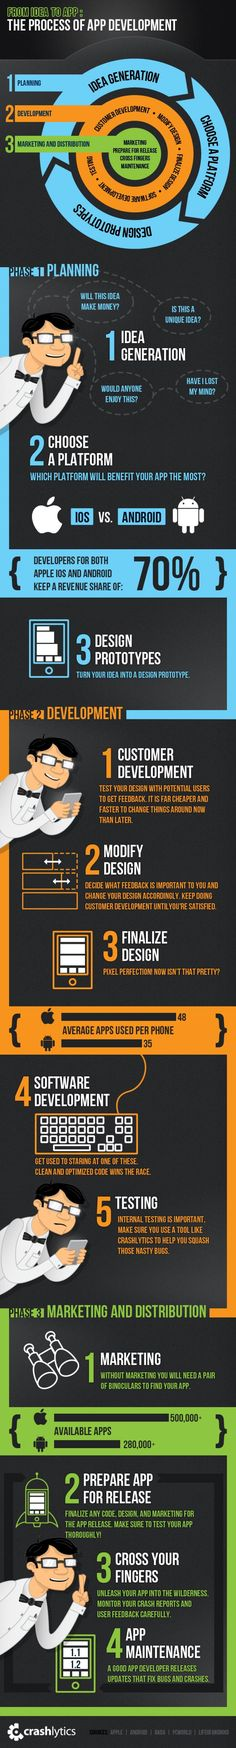 From Idea to App: The Process of App Development